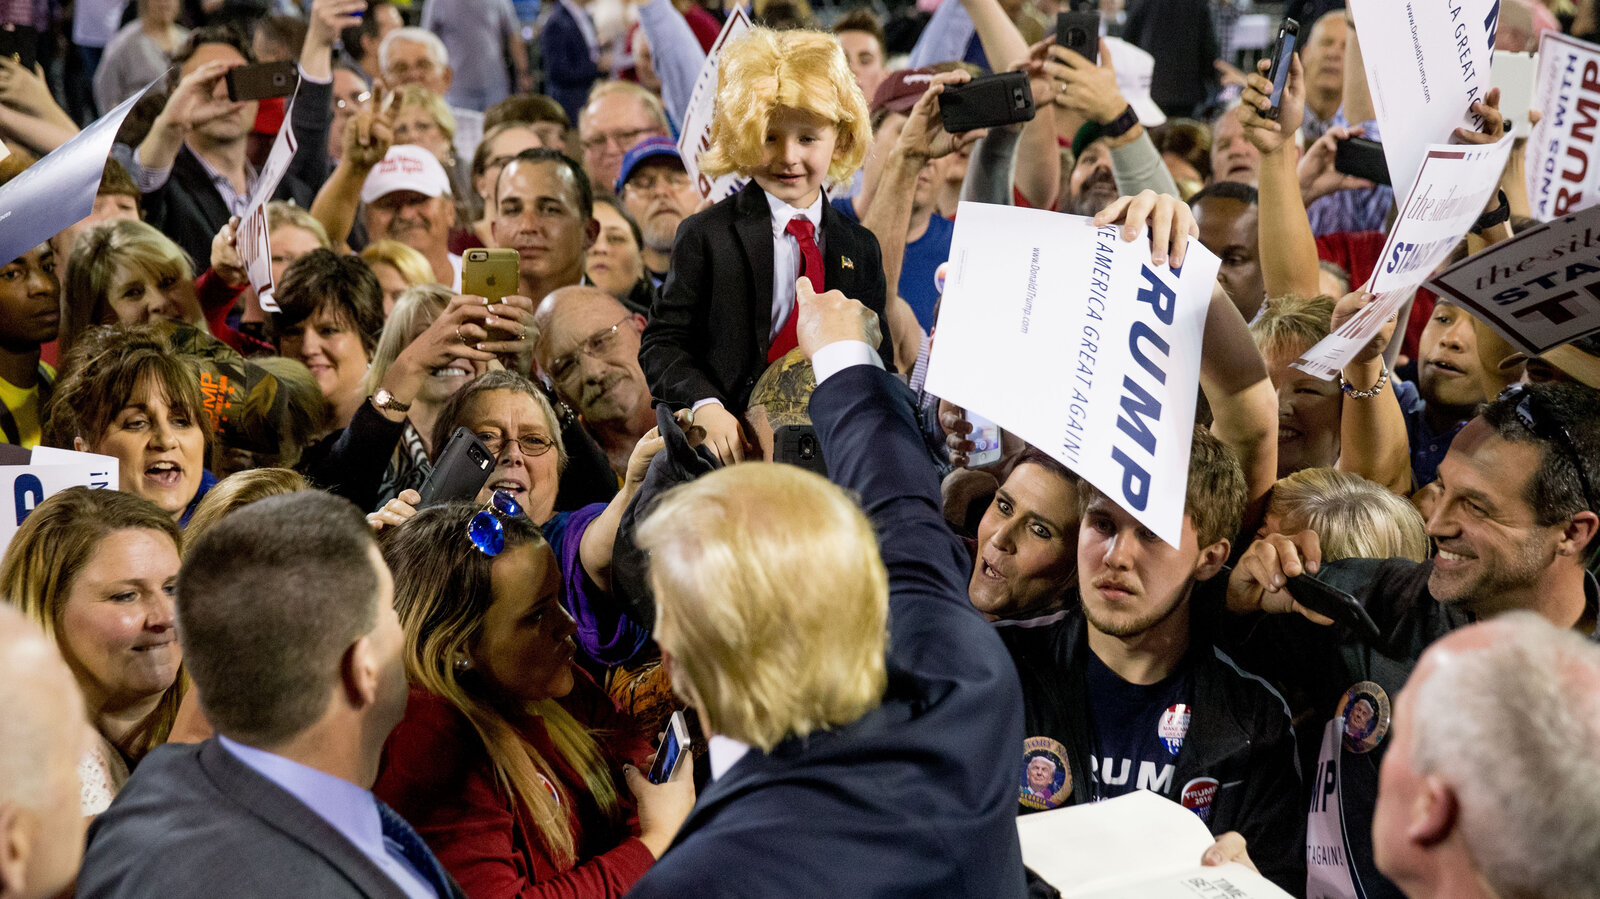 Republican presidential candidate Donald Trump acknowledges his lookalike Colton Jordan, 5, of Cario, Ga., after a rally at Valdosta State University in Georgia on Monday.